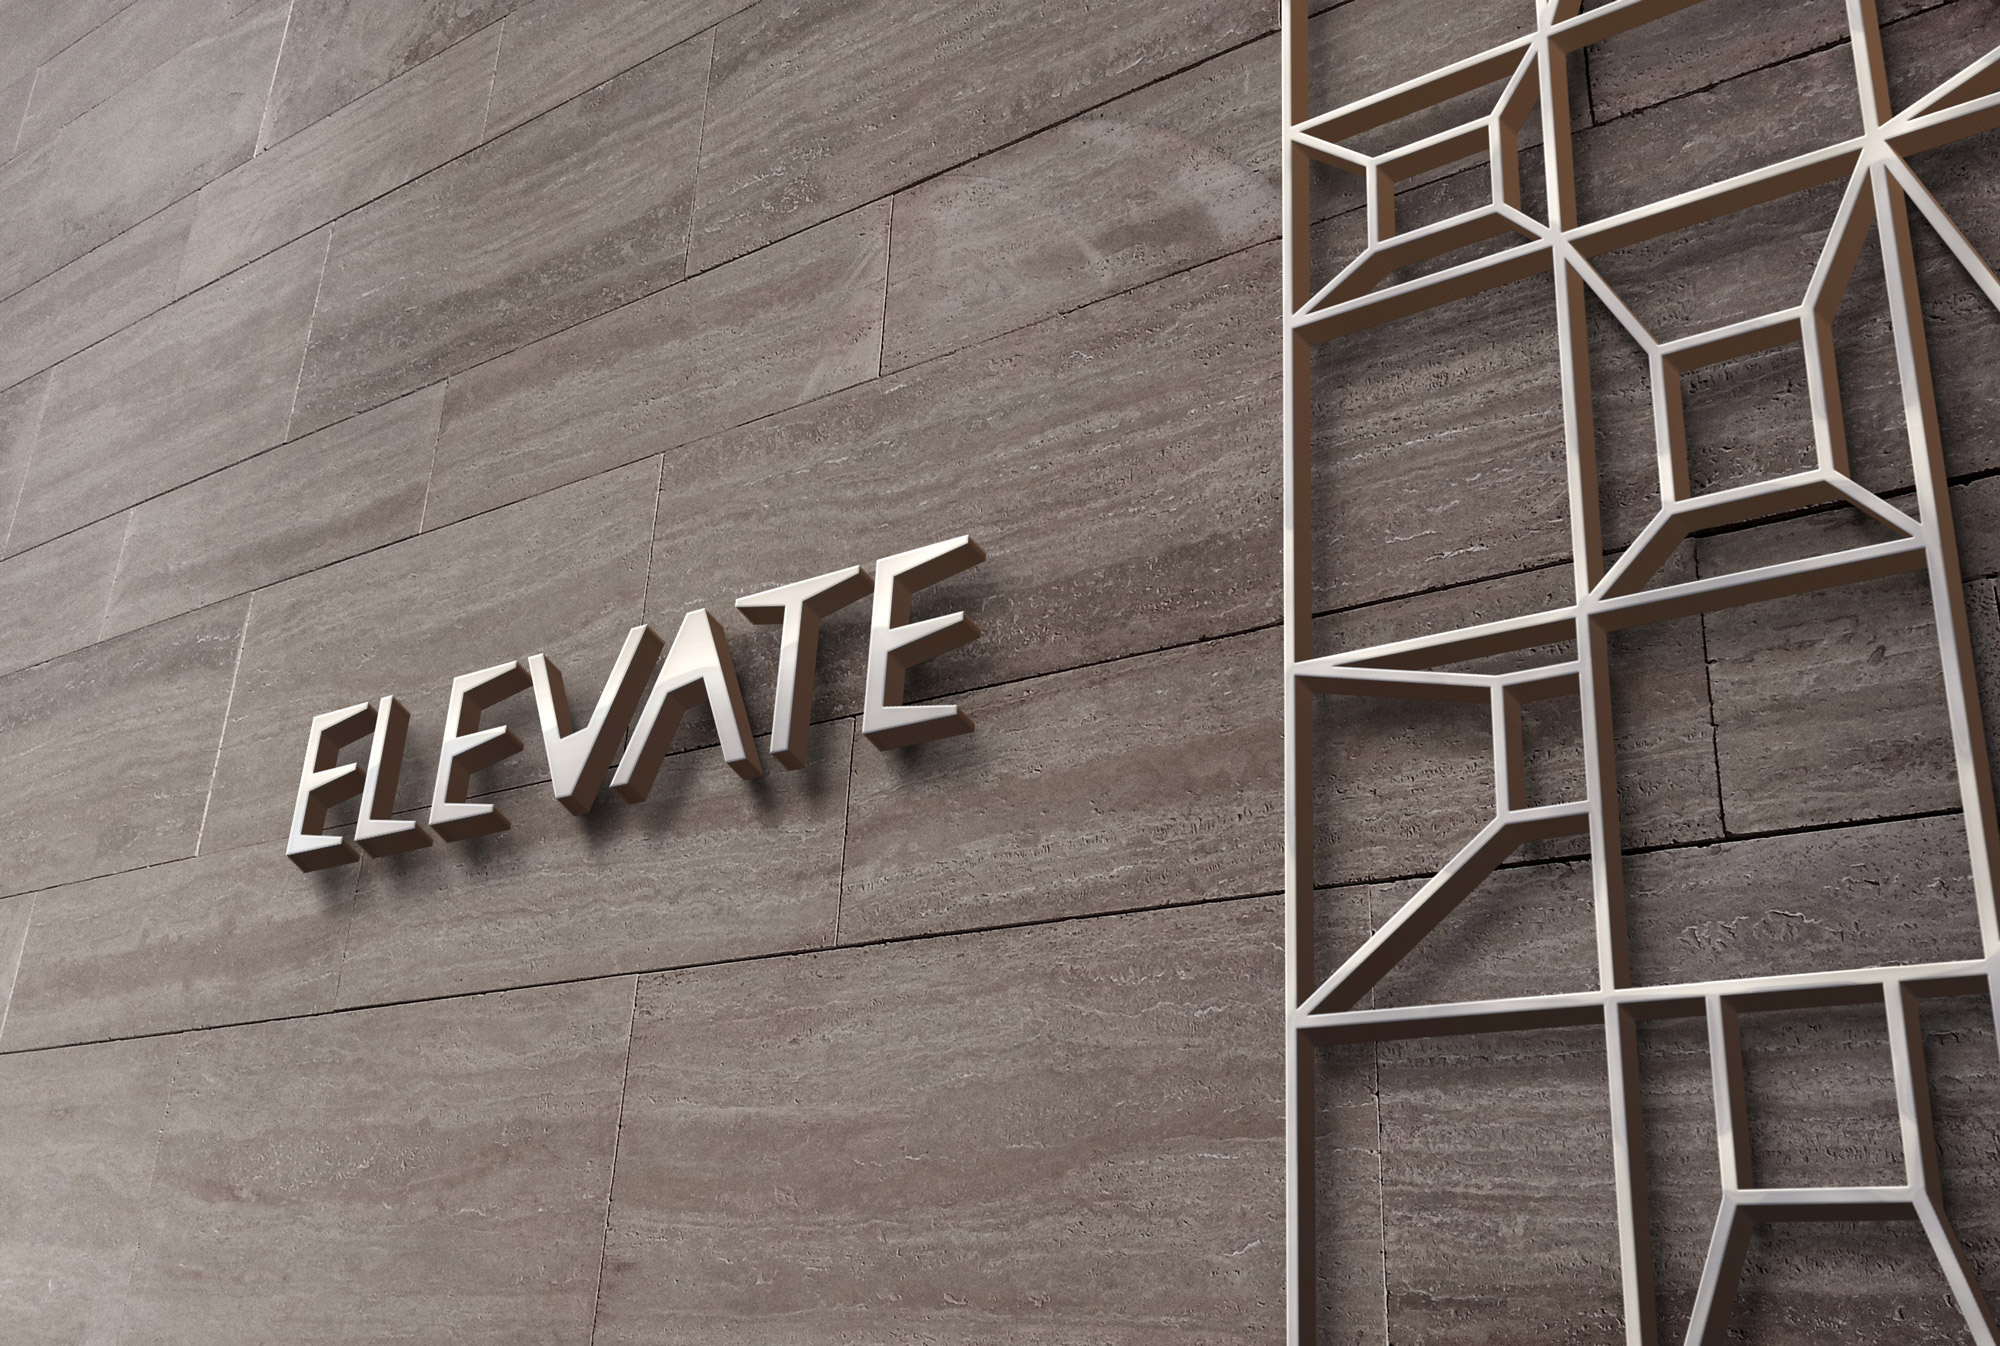 miriello-grafico_ELEVATE-Santa-Monica-Los-Angeles-apartment-branding-signage-28.jpg